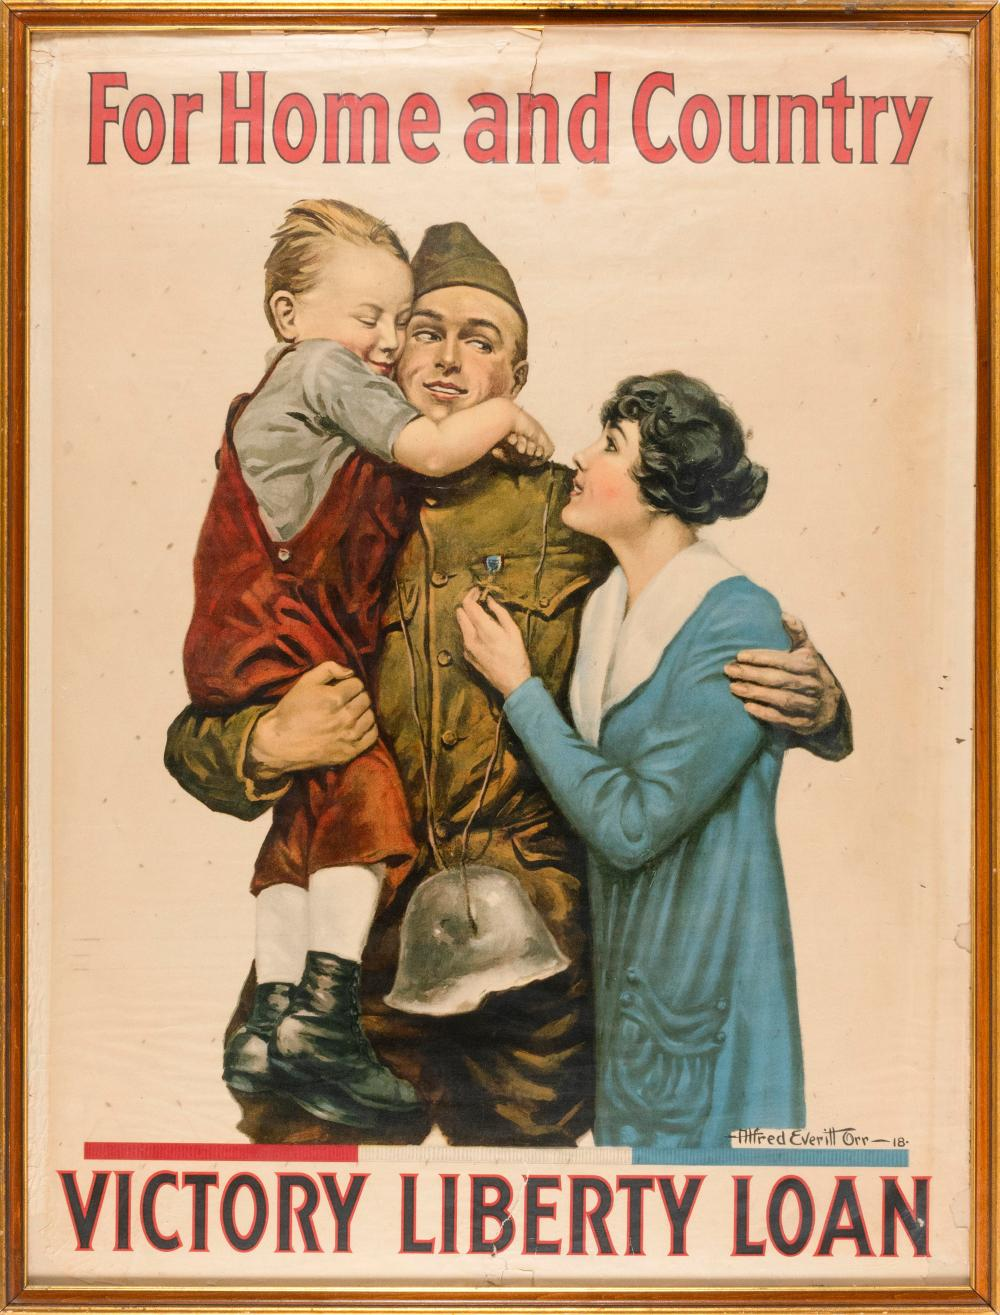 """""""FOR HOME AND COUNTRY"""" WORLD WAR I POSTER By Alfred Everitt Orr for the Victory Liberty Loan. Depicts a soldier embracing his wife a..."""